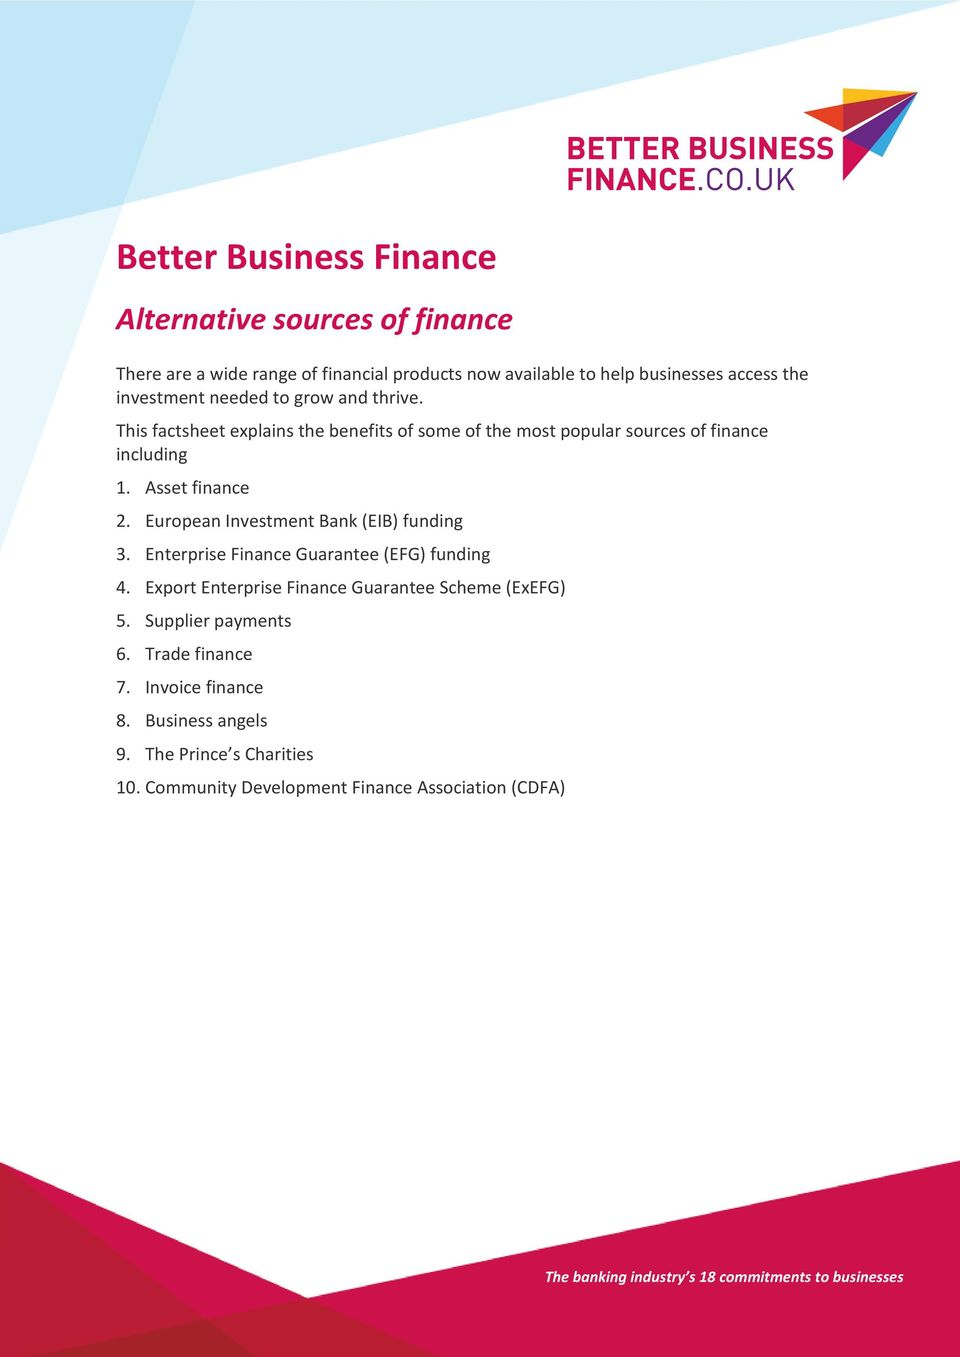 Asset finance 2. European Investment Bank (EIB) funding 3. Enterprise Finance Guarantee (EFG) funding 4.